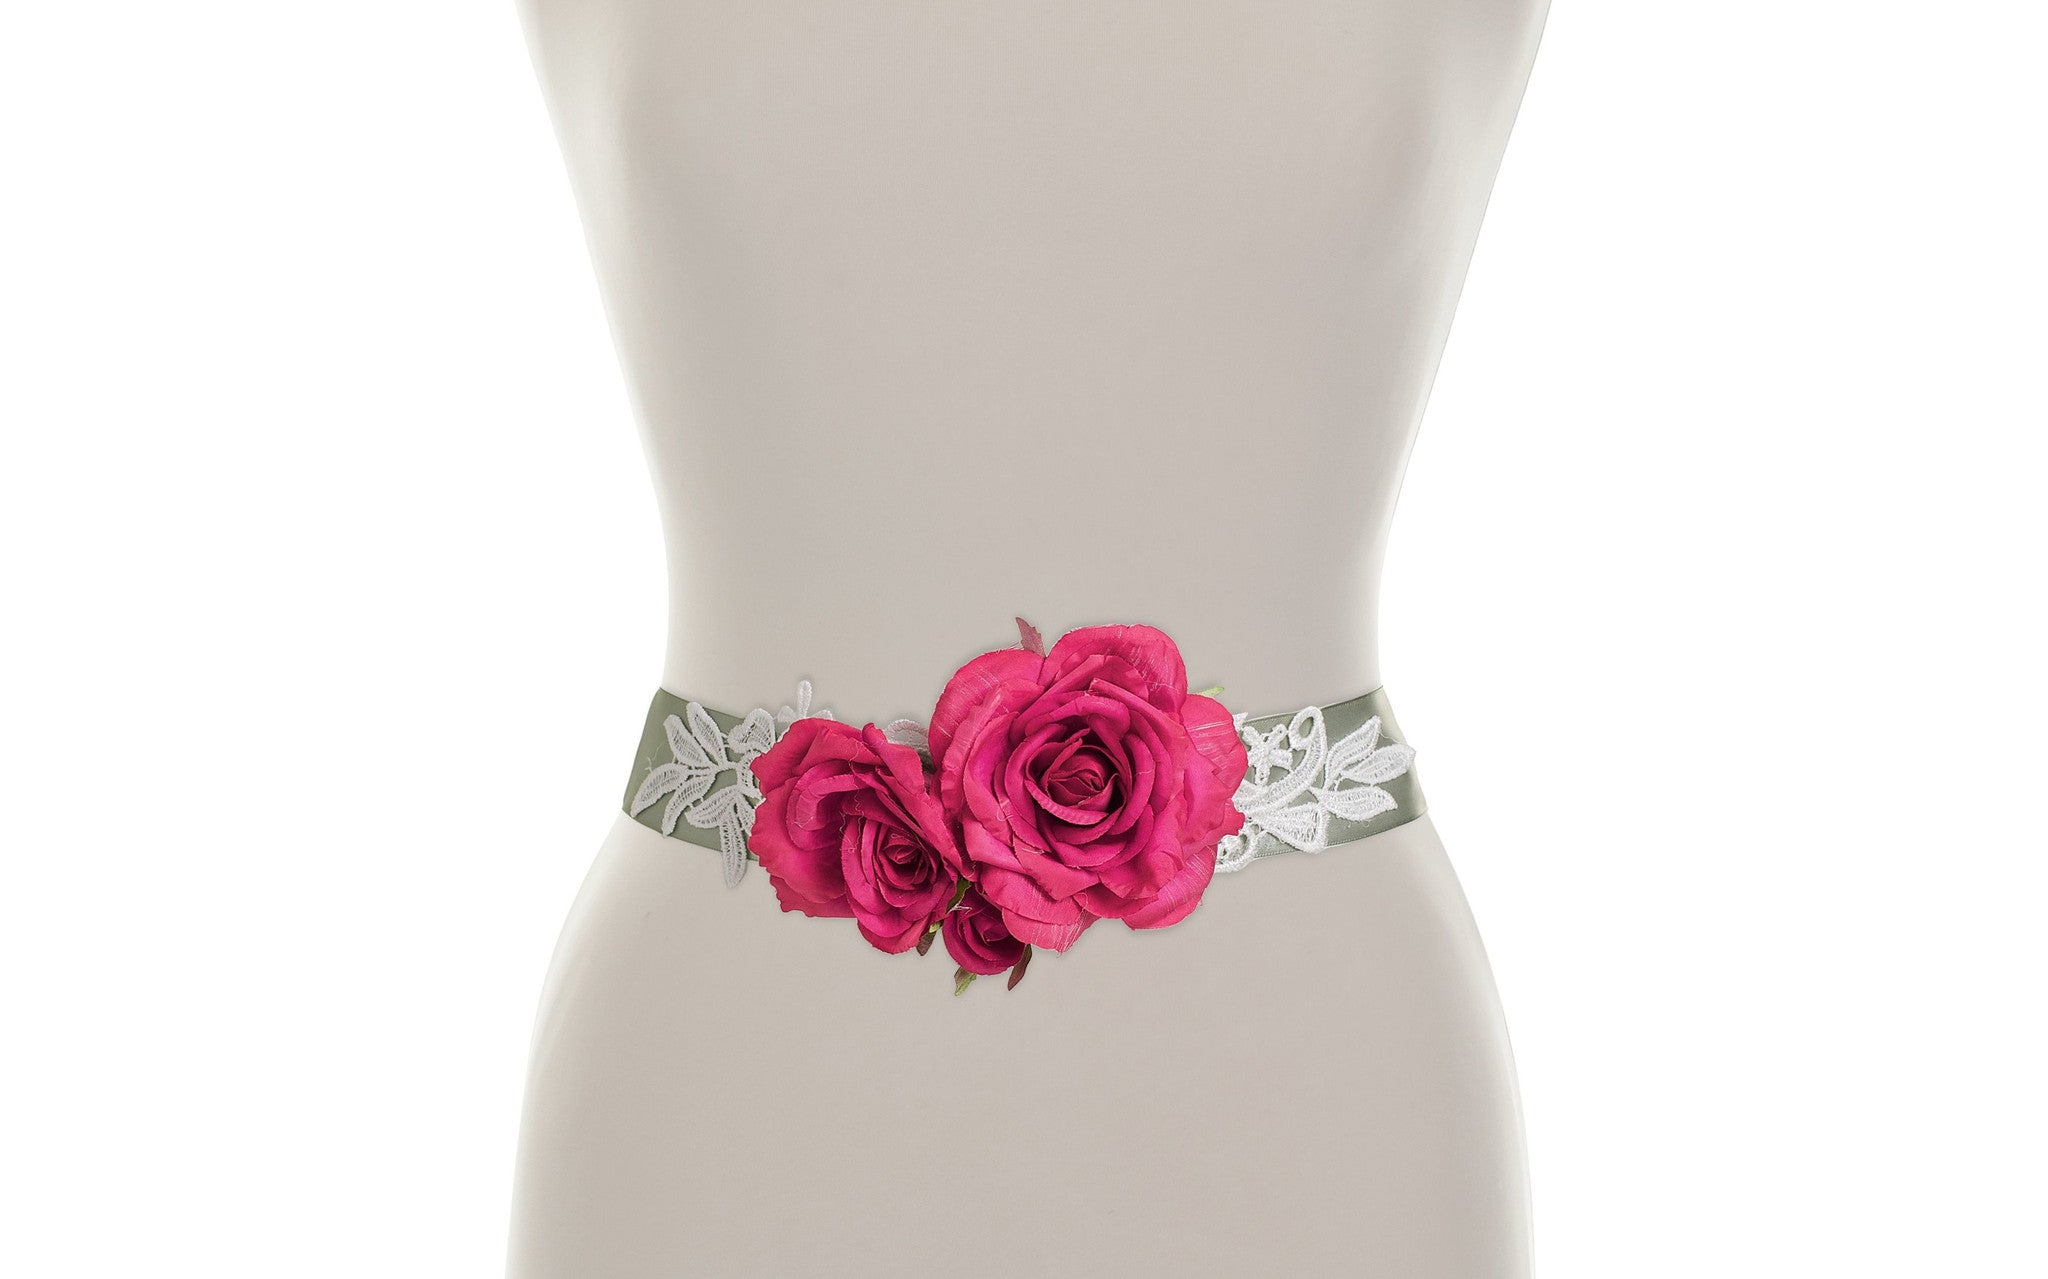 Rosa flower belt as seen in ok magazine by lily bella lily bella previous image next image izmirmasajfo